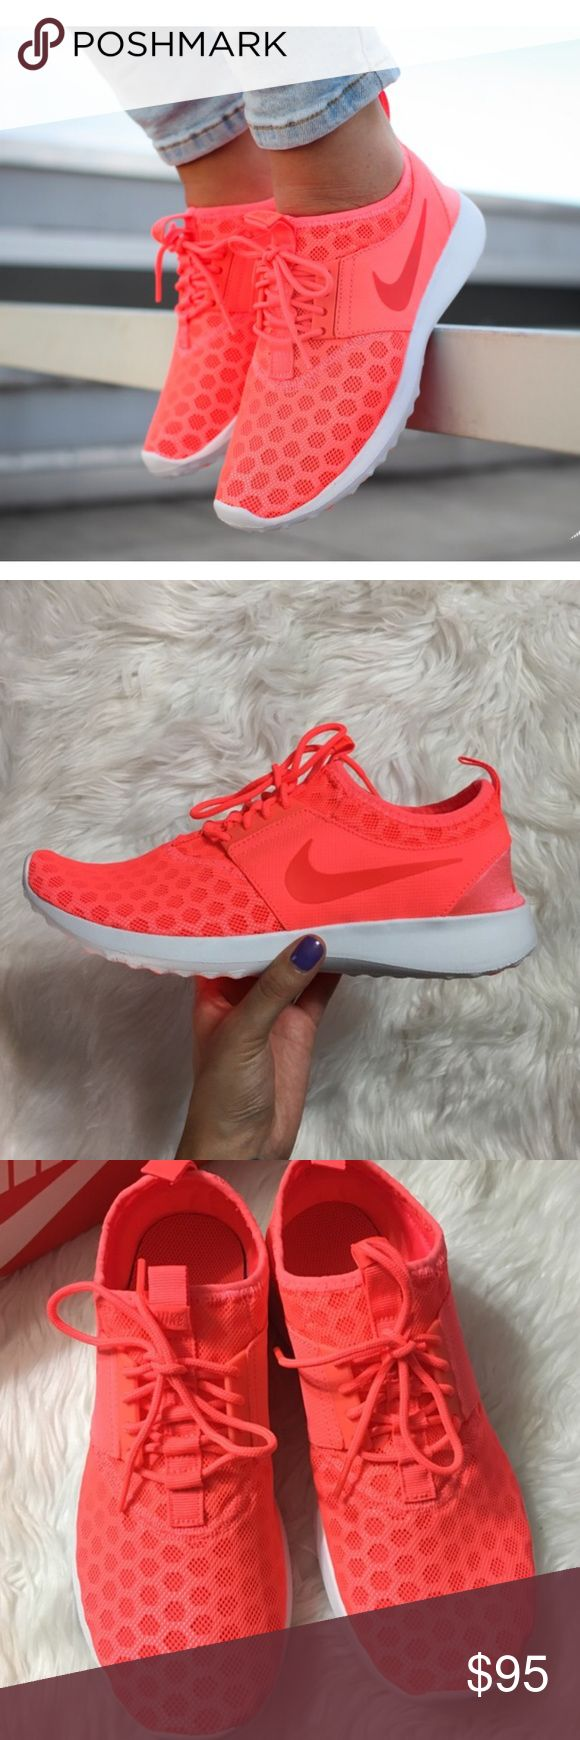 Women's Nike Juvenate Zenji Brand new with the box but no lid. Color is hot